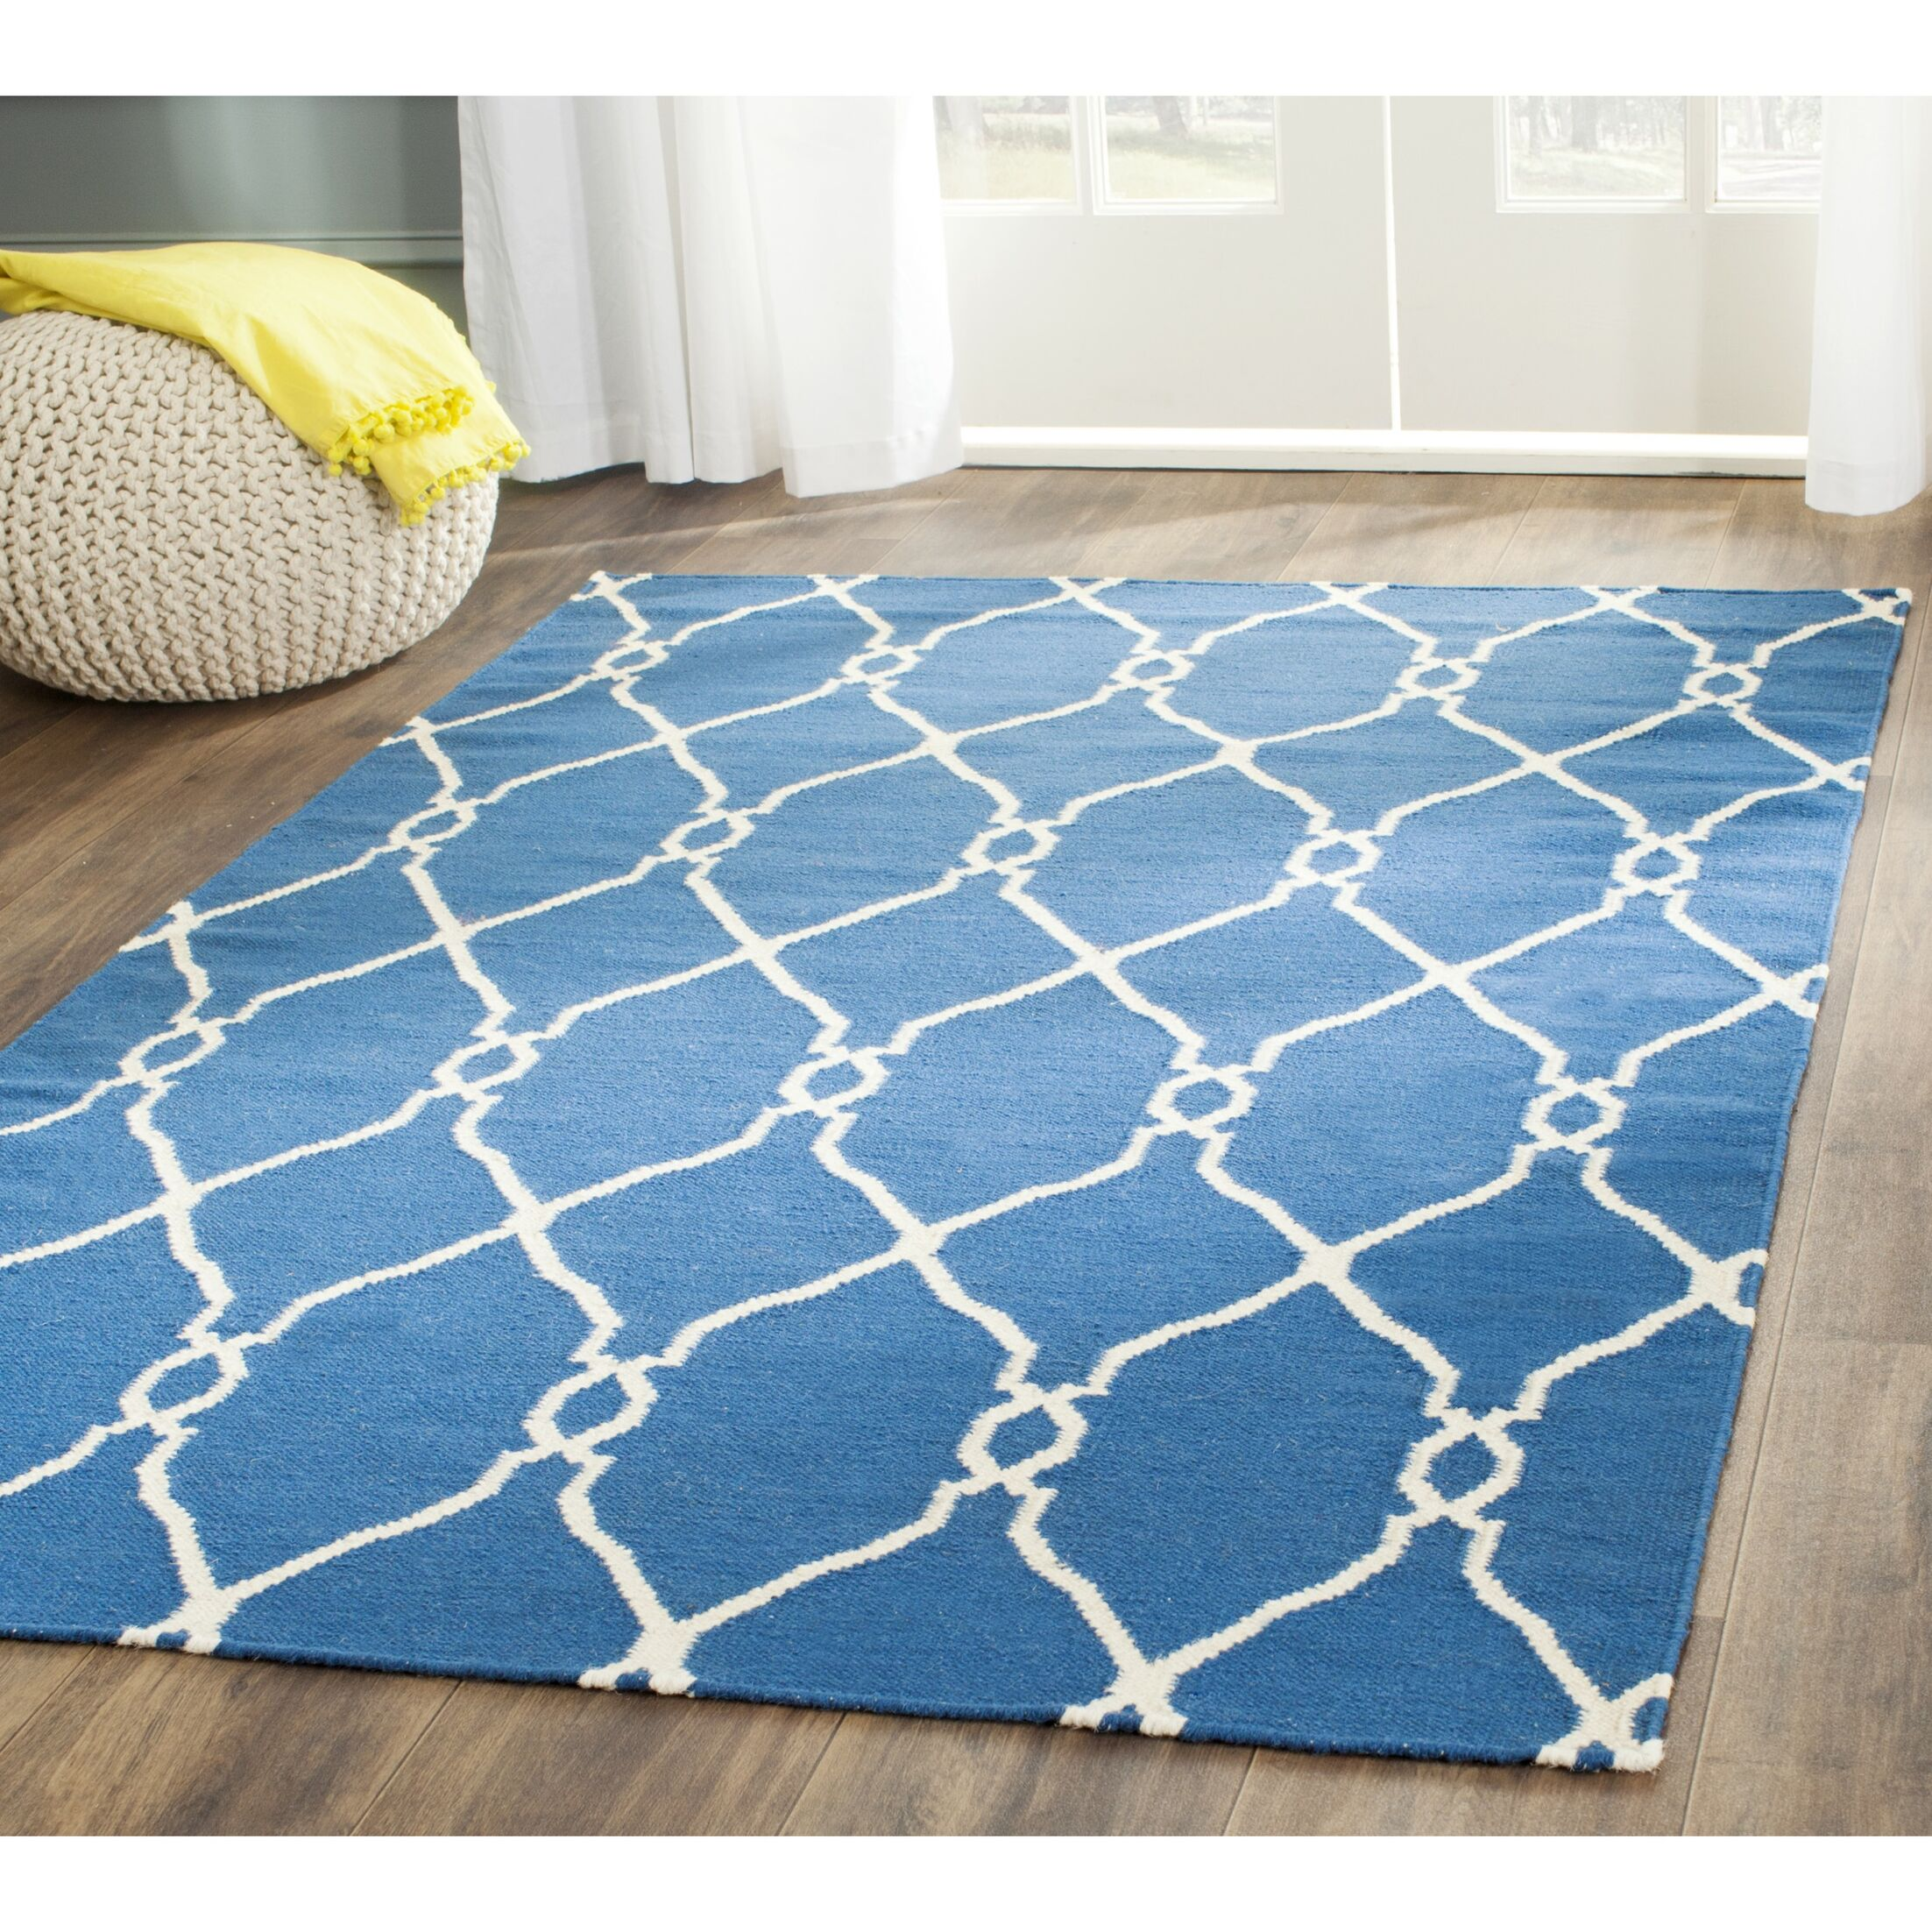 Dhurries Hand-Woven Wool Dark Blue Area Rug Rug Size: Rectangle 8' x 10'